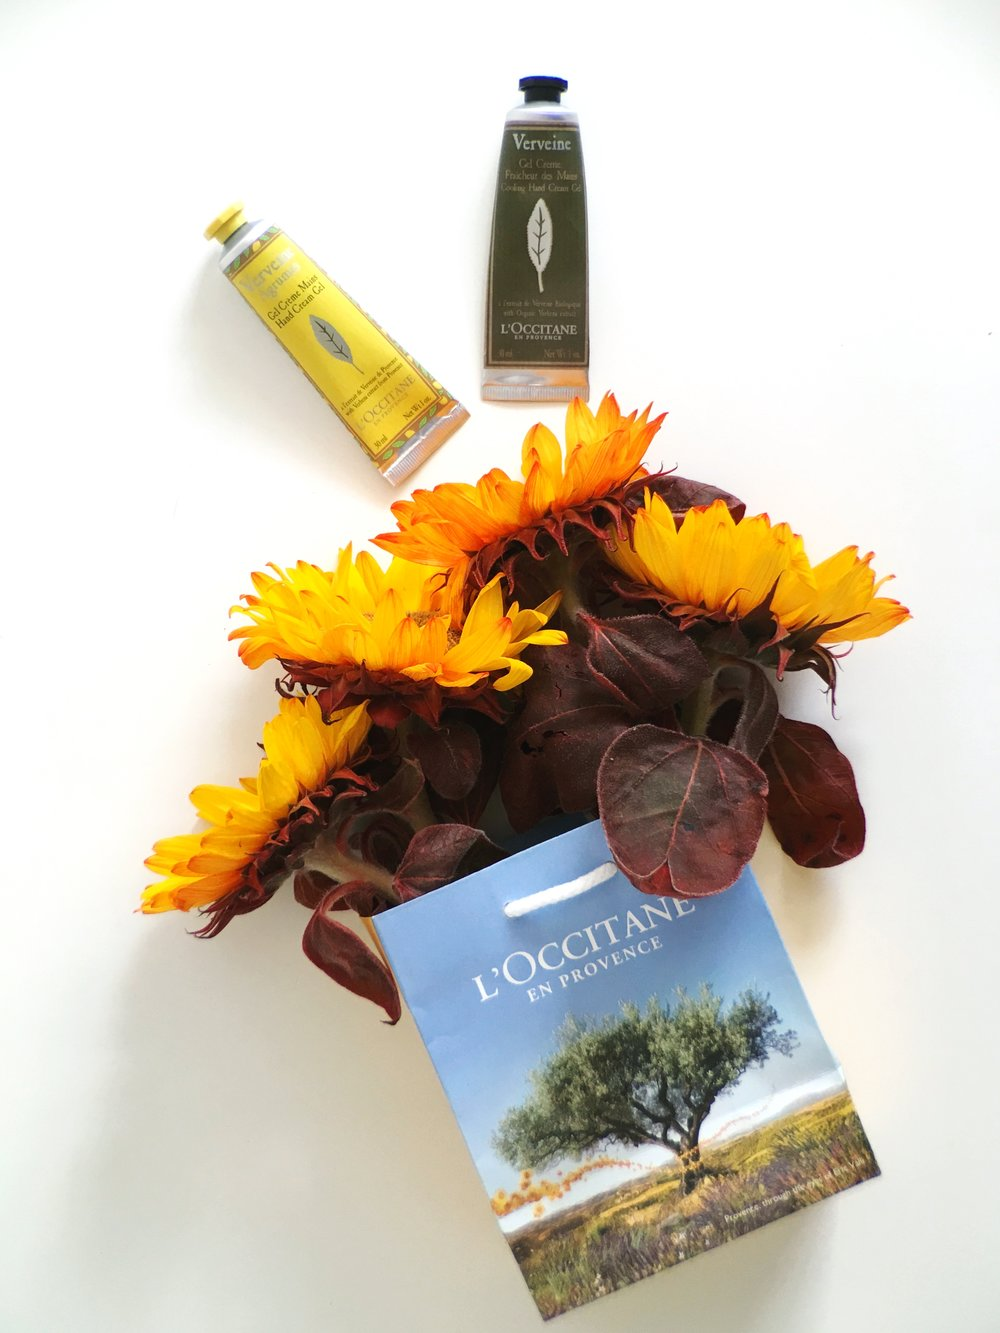 Yellow Sunflowers with L'Occitane Hand gel cream in Verviene/ Citrusy scents